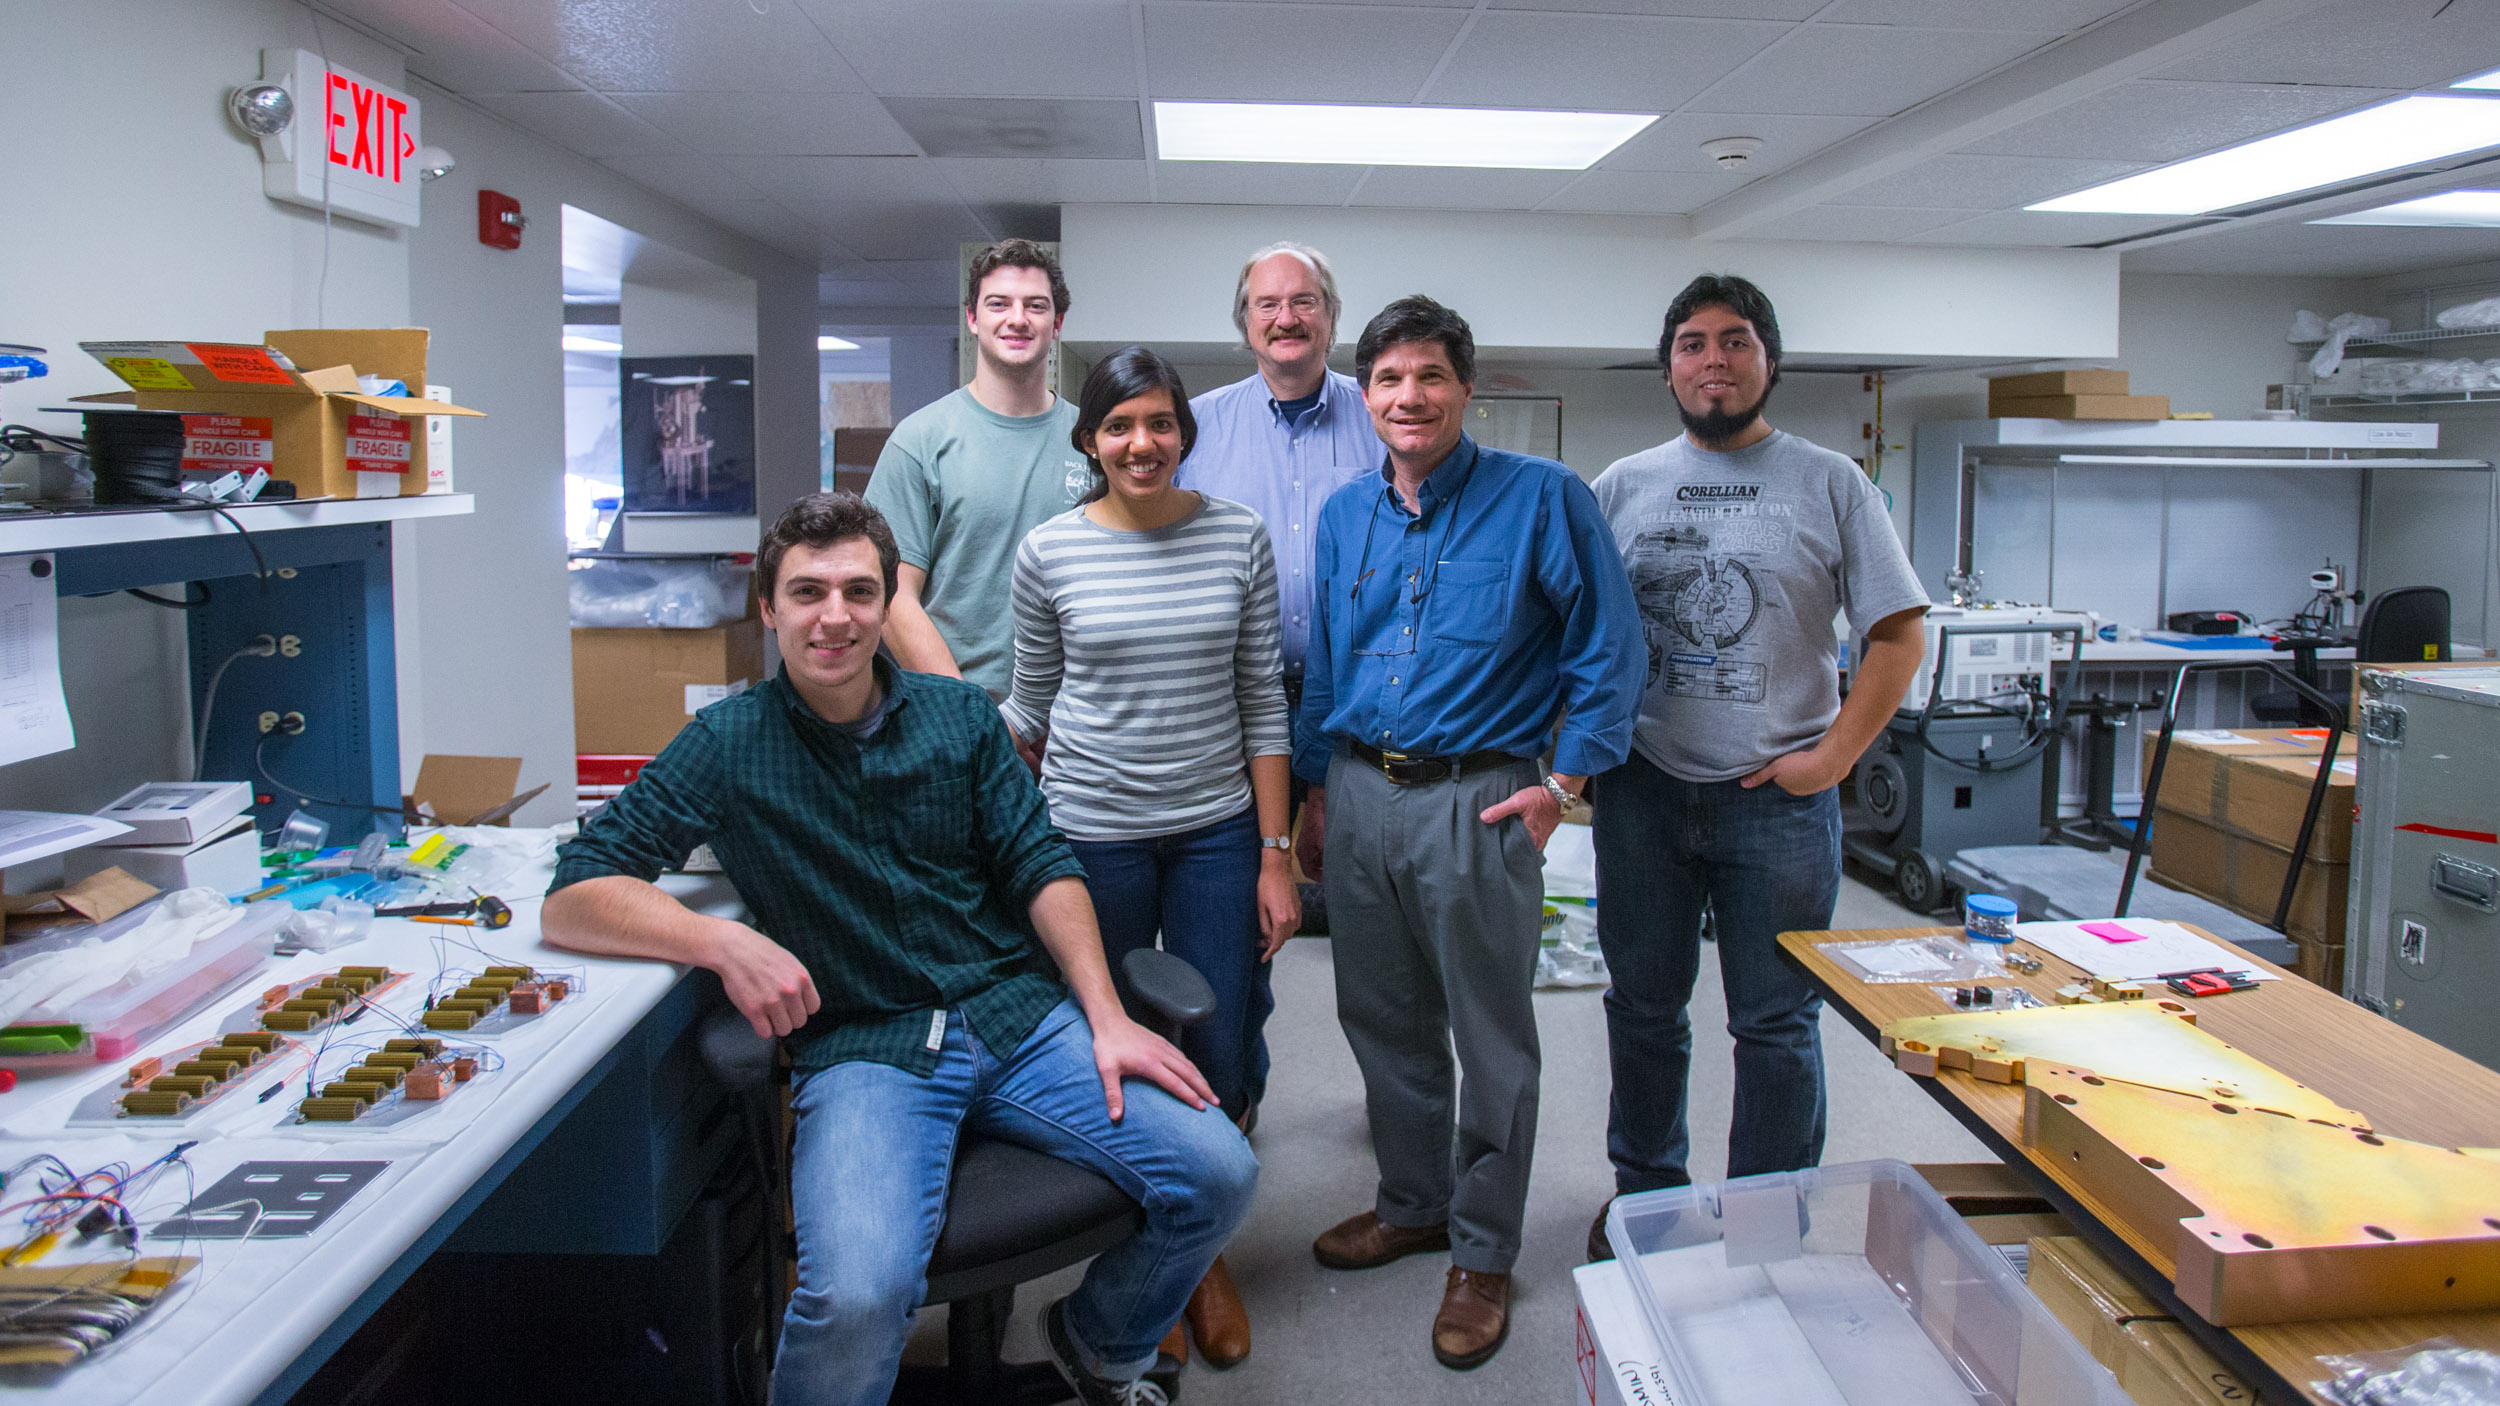 From left to right: Matthew Hall, Brady Anthony-Brumfield, Mita Tembe, Steven Majewski, John Wilson and Juan Pablo Colque Saavedra, only some of the team working at UVA to build the APOGEE instrument.